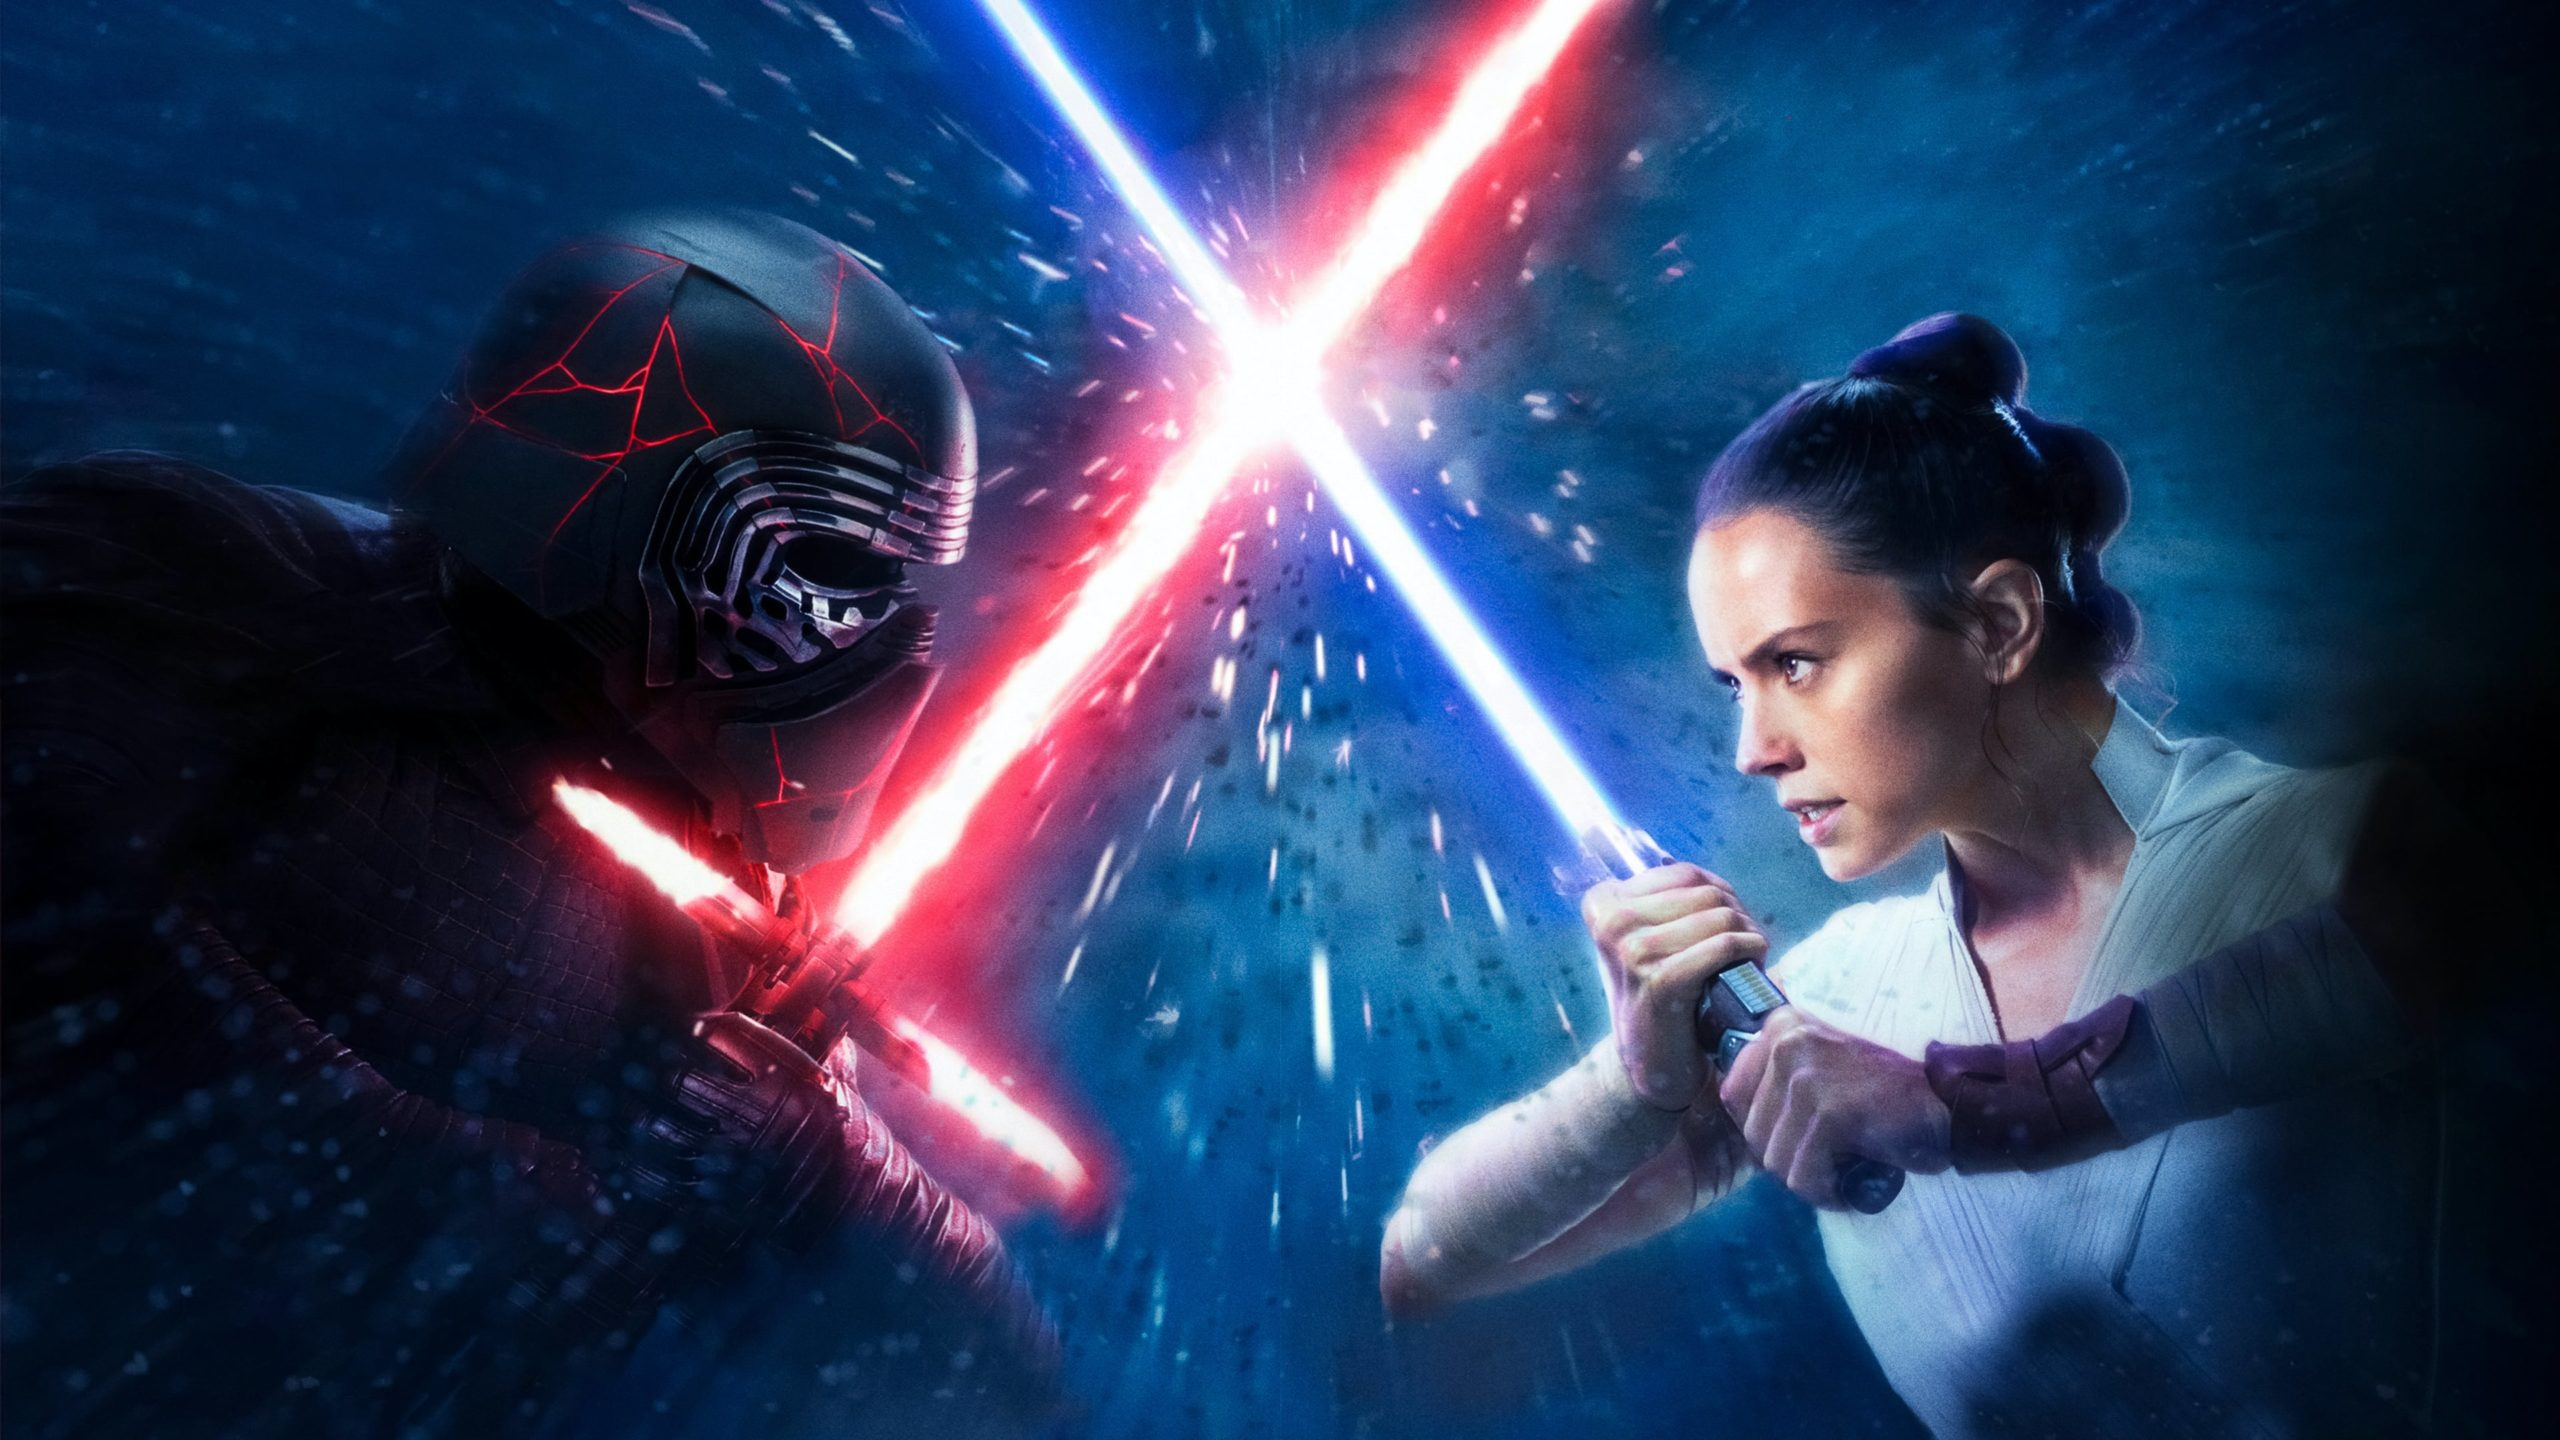 Star Wars: The Rise of Skywalker continúa dominando la taquilla mundial